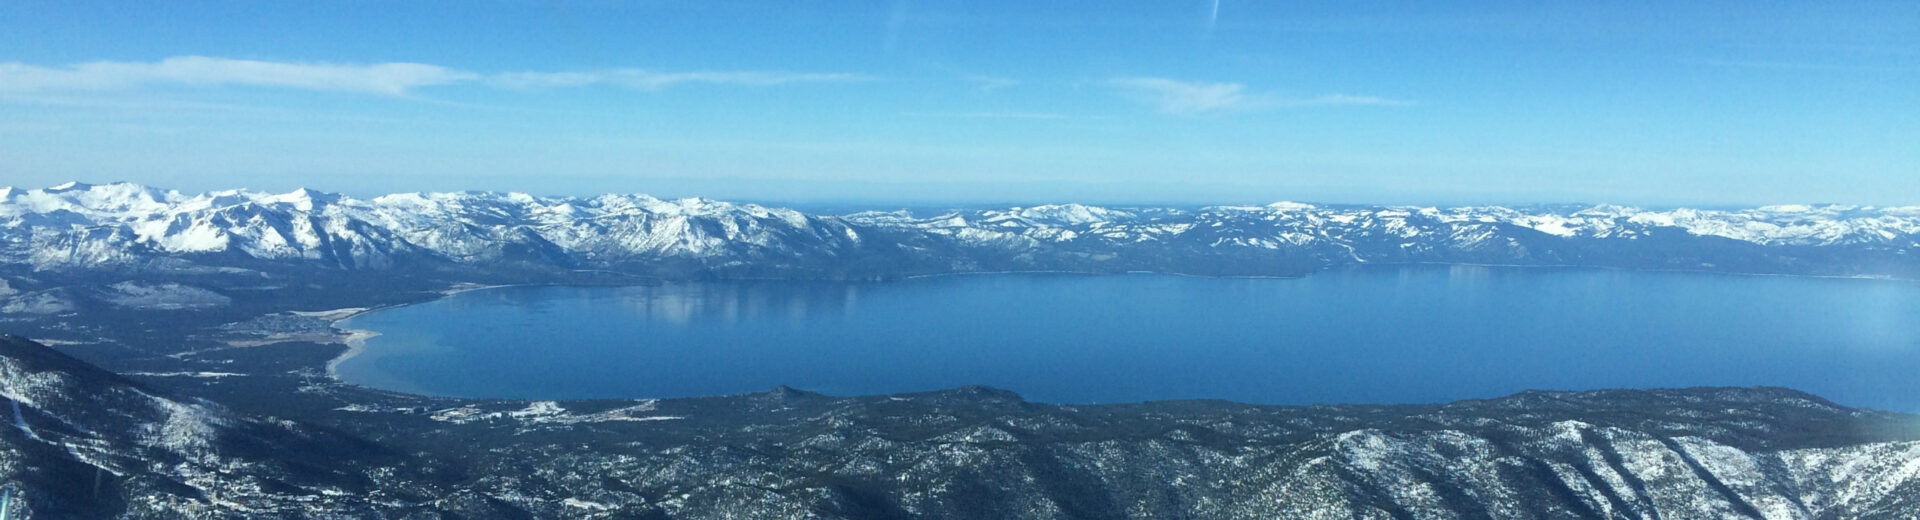 Airborne Photo of Lake Tahoe